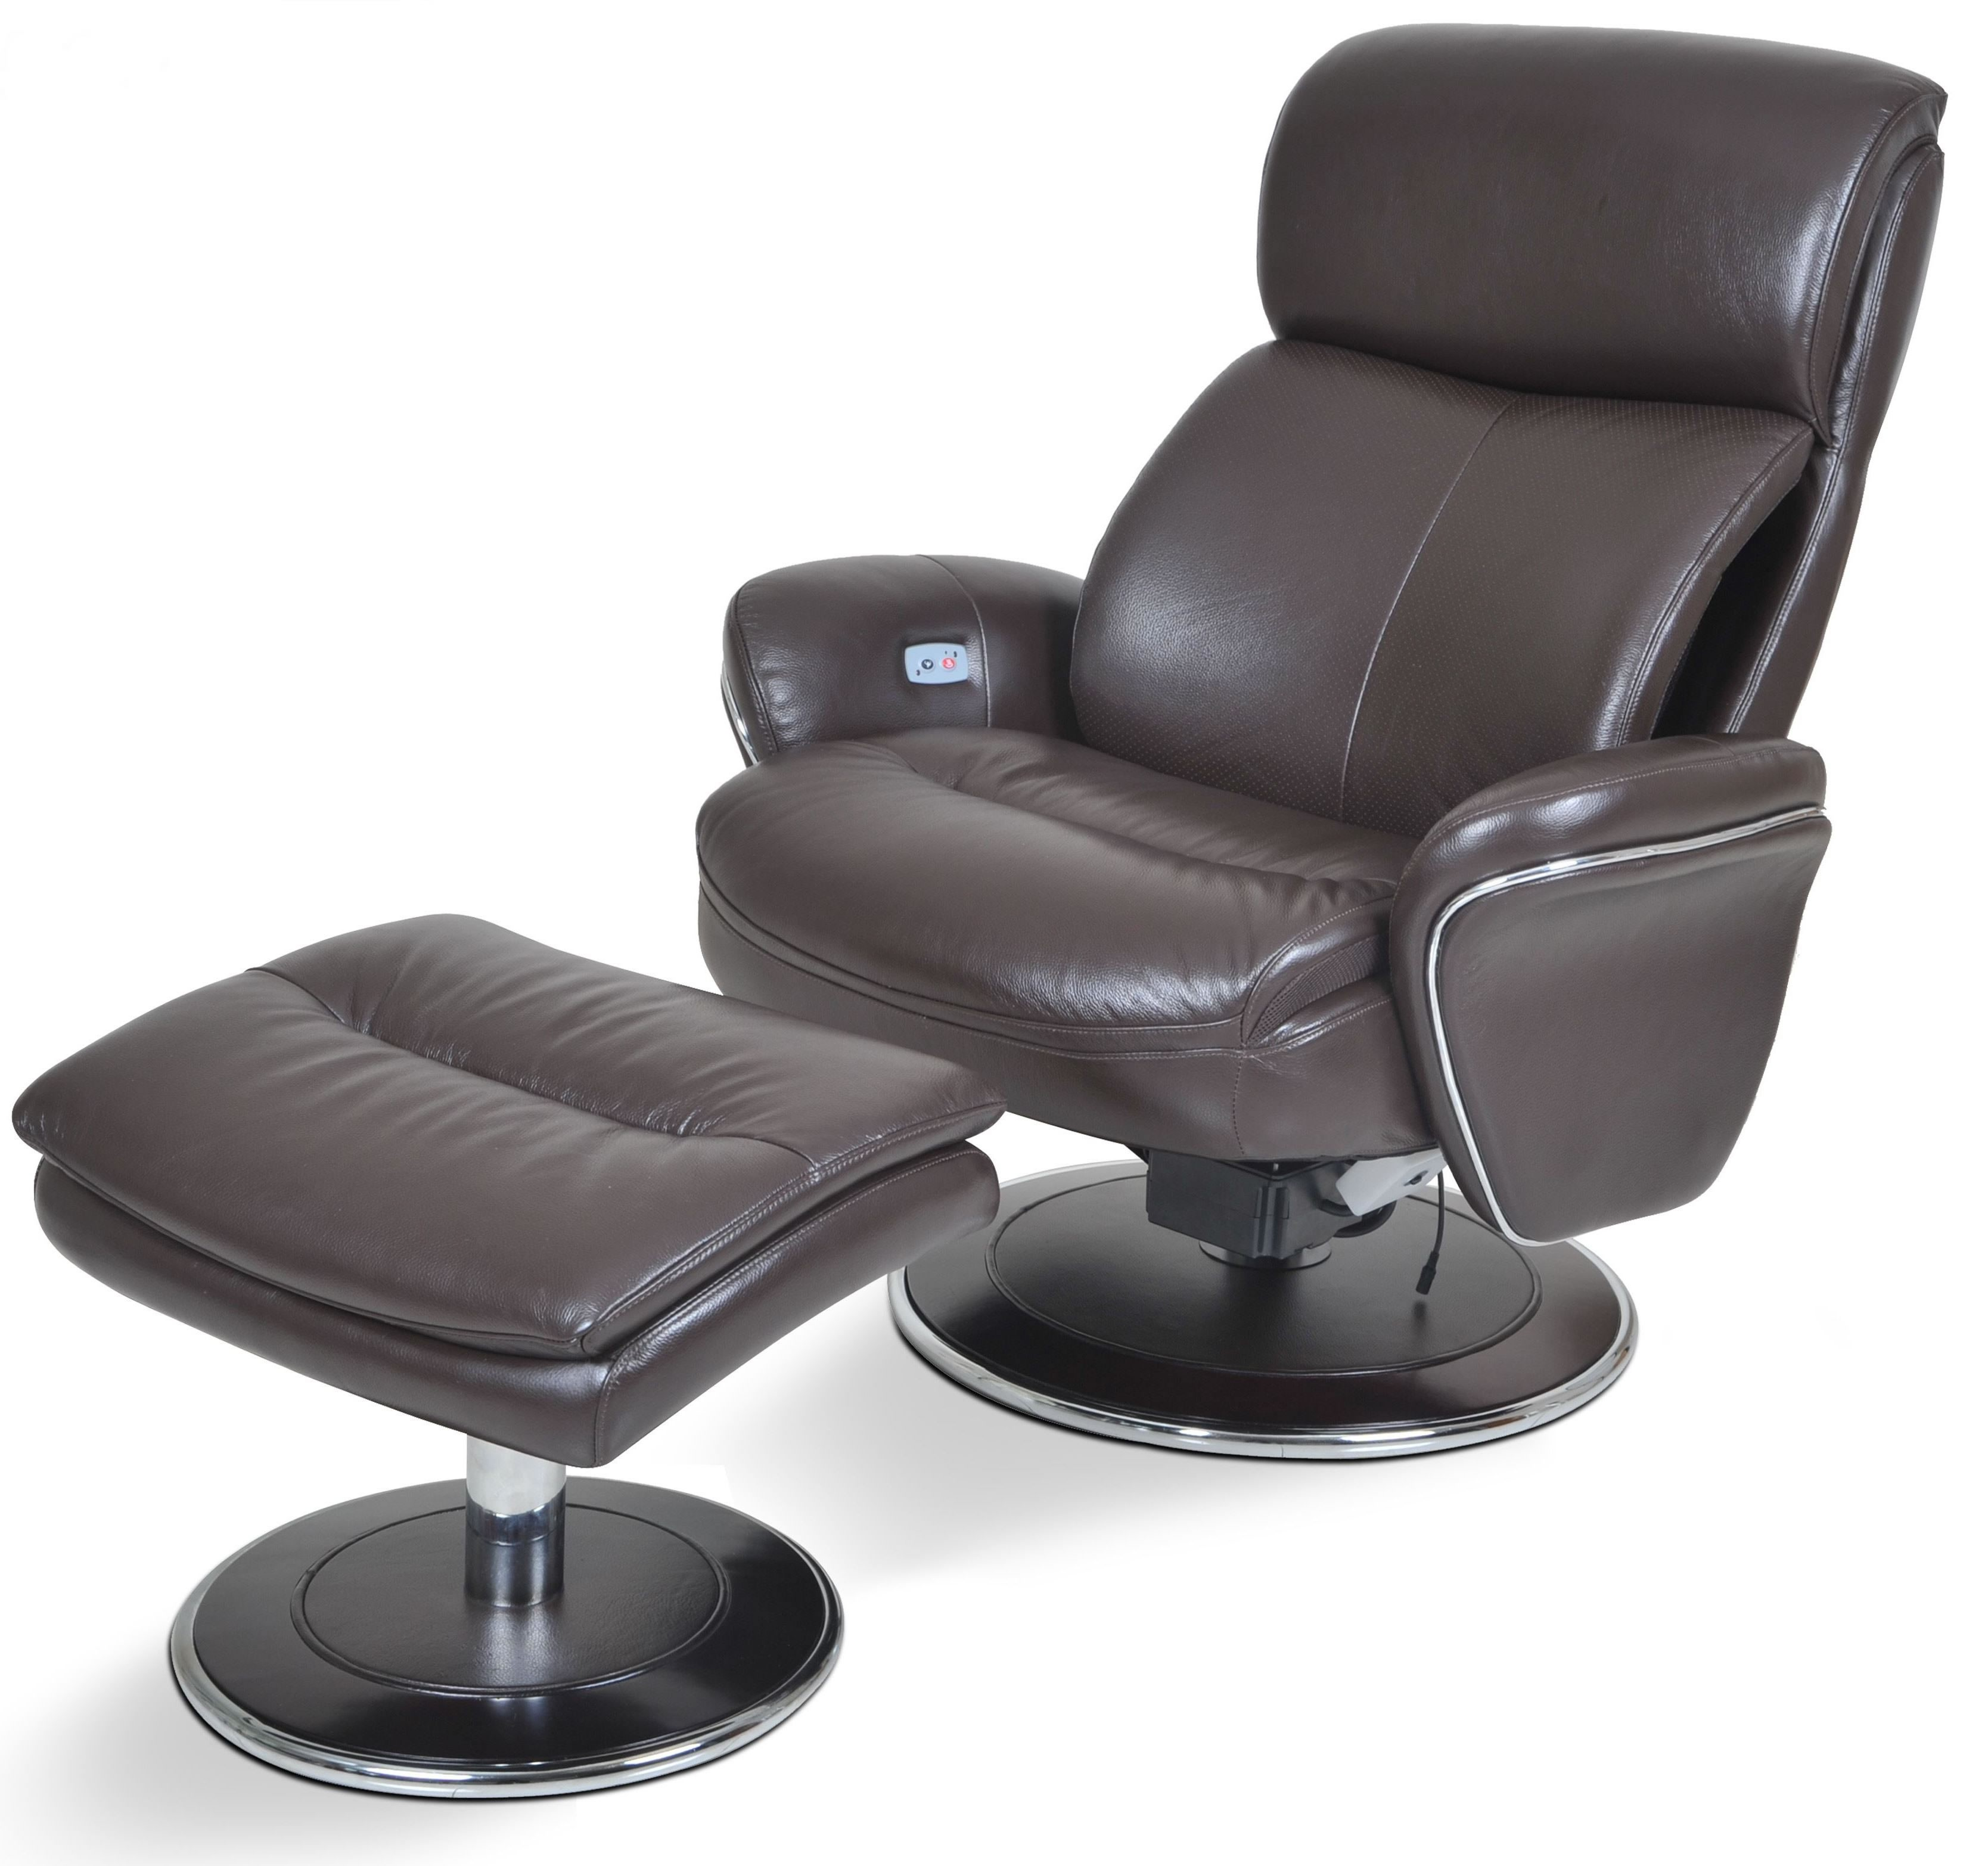 ergonomic chair and ottoman sleek office big man leather espresso from